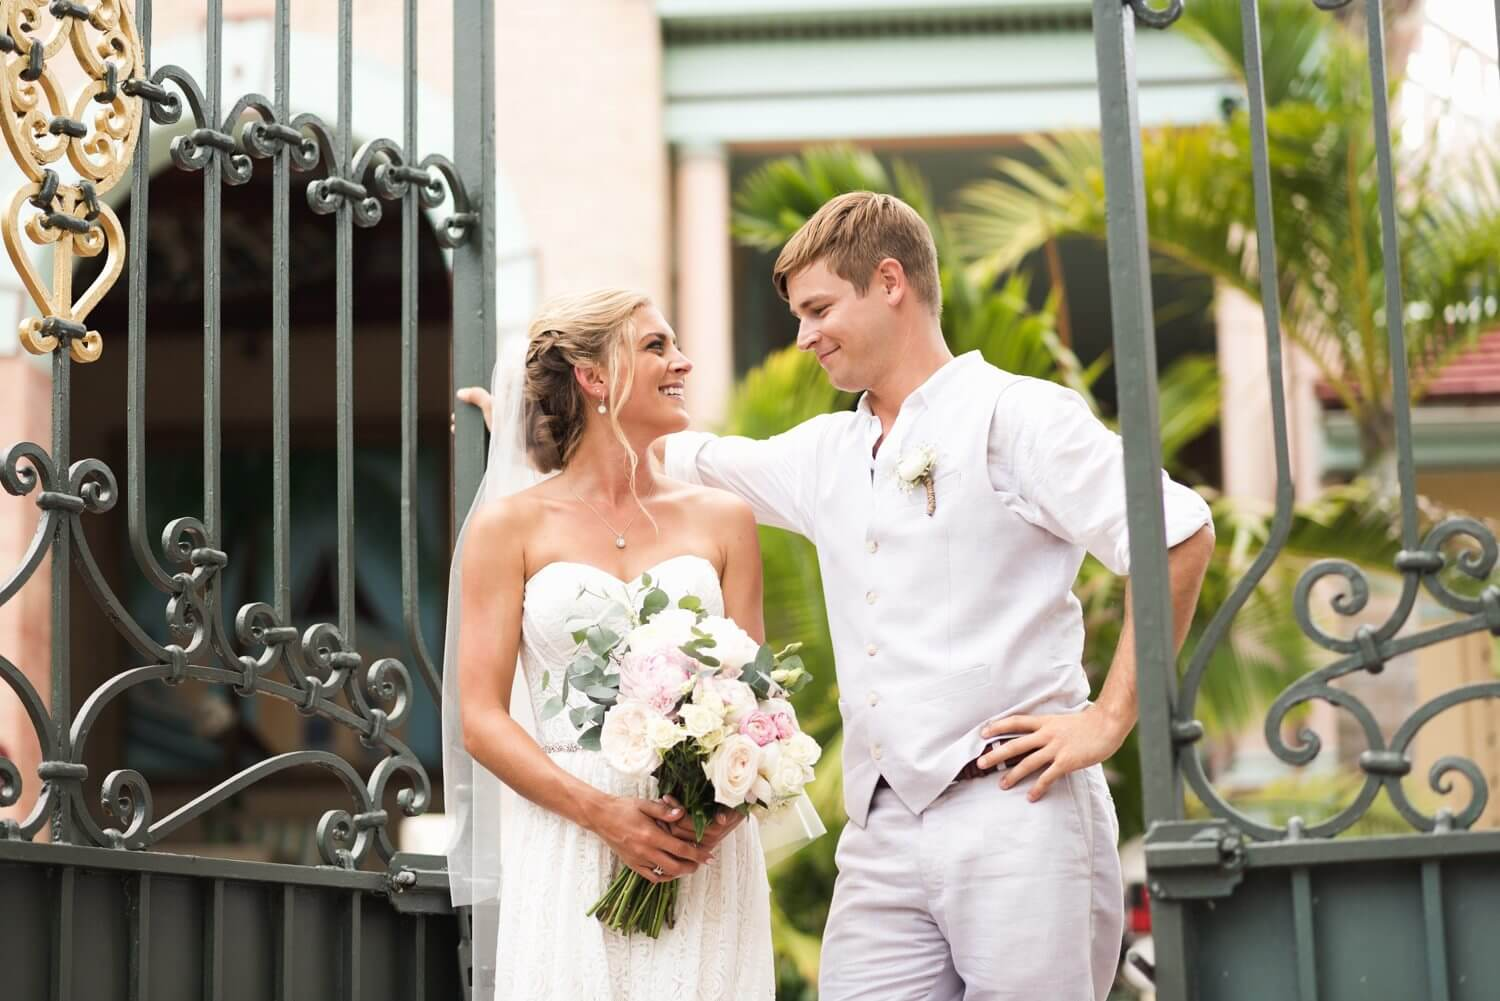 Freas Photography Southernmost House Wedding 62 - Boho Styled Key West Wedding at the Southernmost House in Key West, Florida